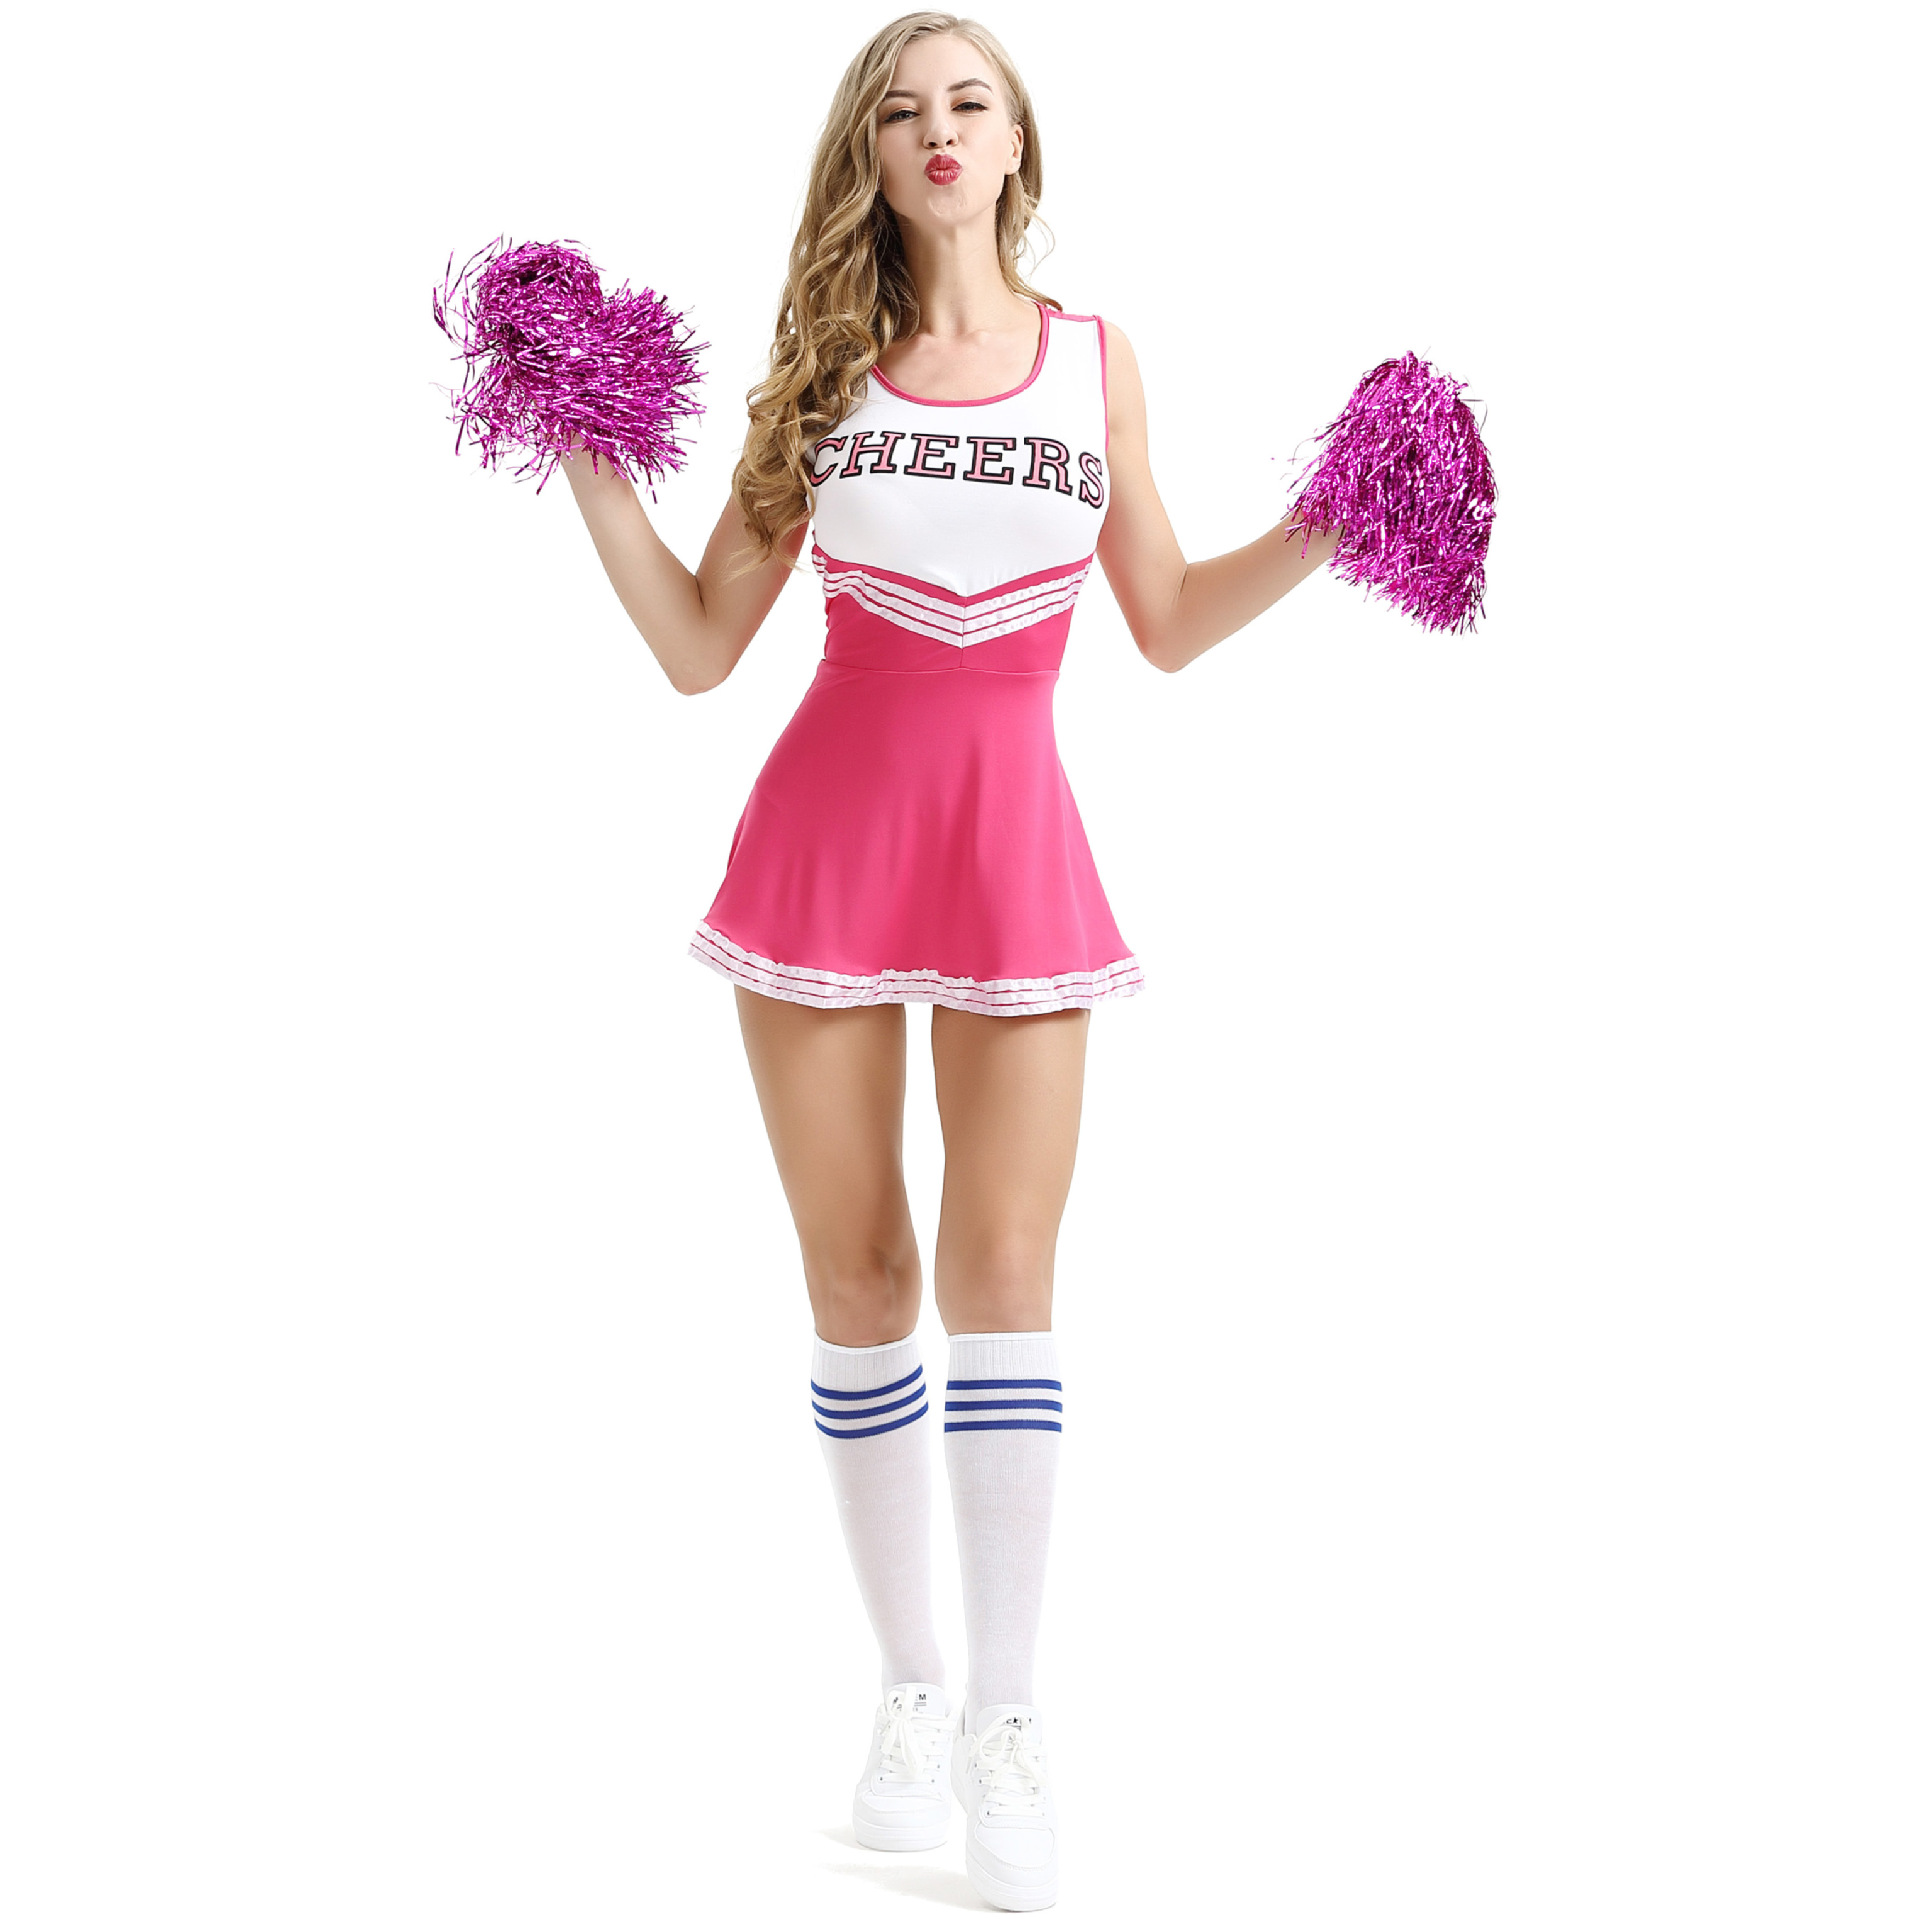 Girl Dancing Show Cheerleader Stage Performance Red Dress+Pompoms Cheerleading Costumes Adult High School Cheer Uniform